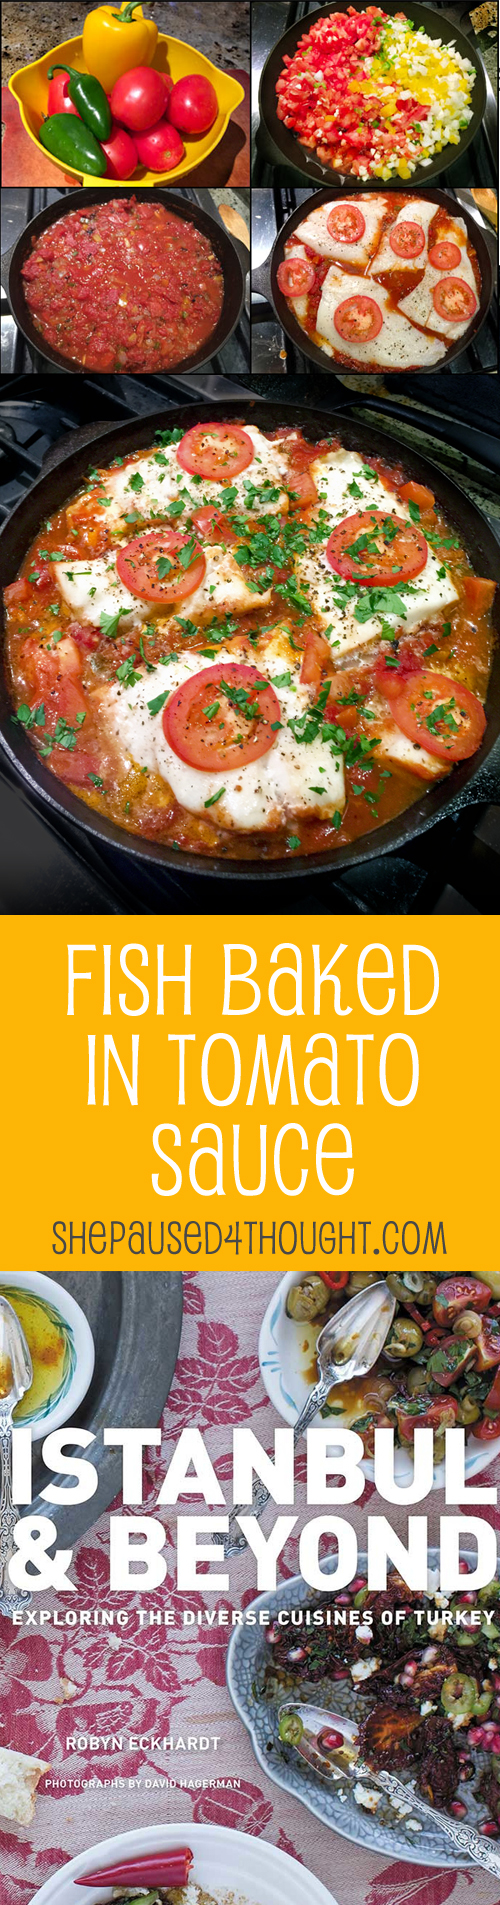 Fish Baked in Tomato Sauce | She Paused 4 Thought